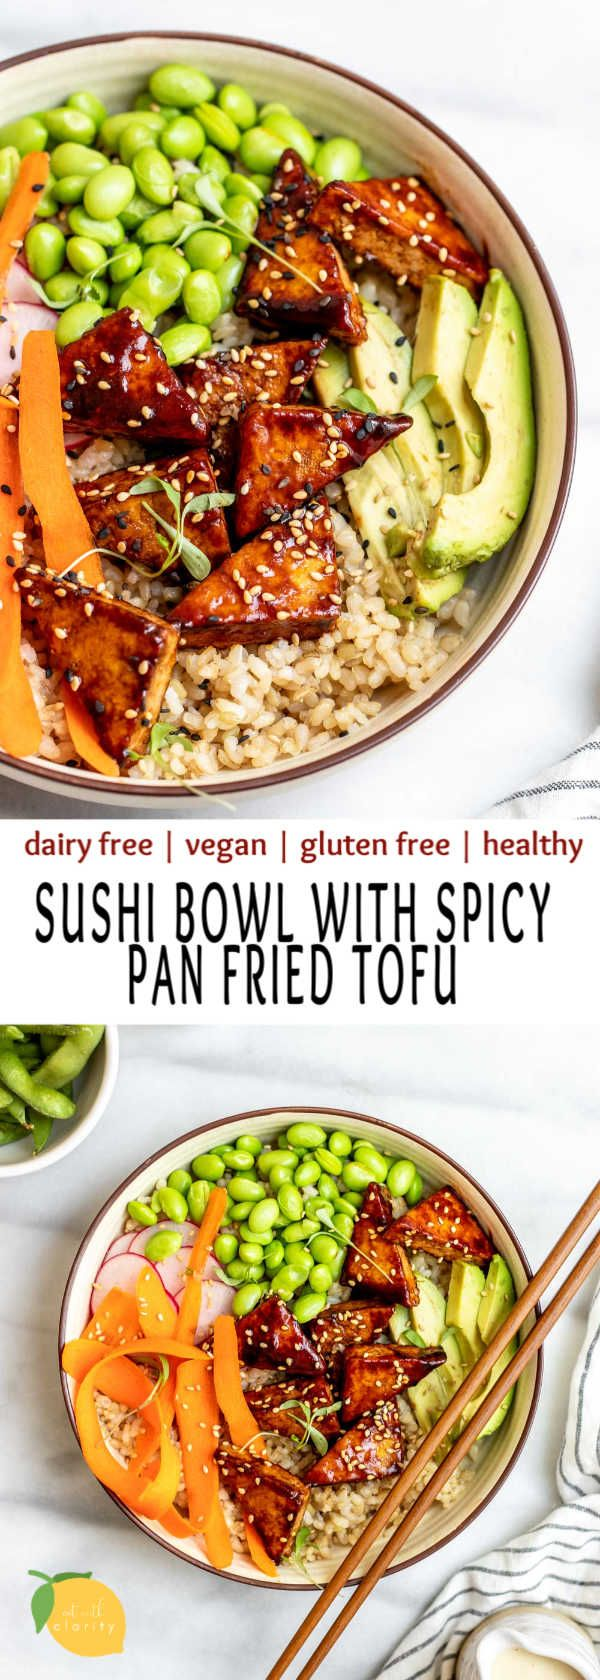 Vegan Sushi Bowl with Pan Fried Tofu | Eat With Clarity